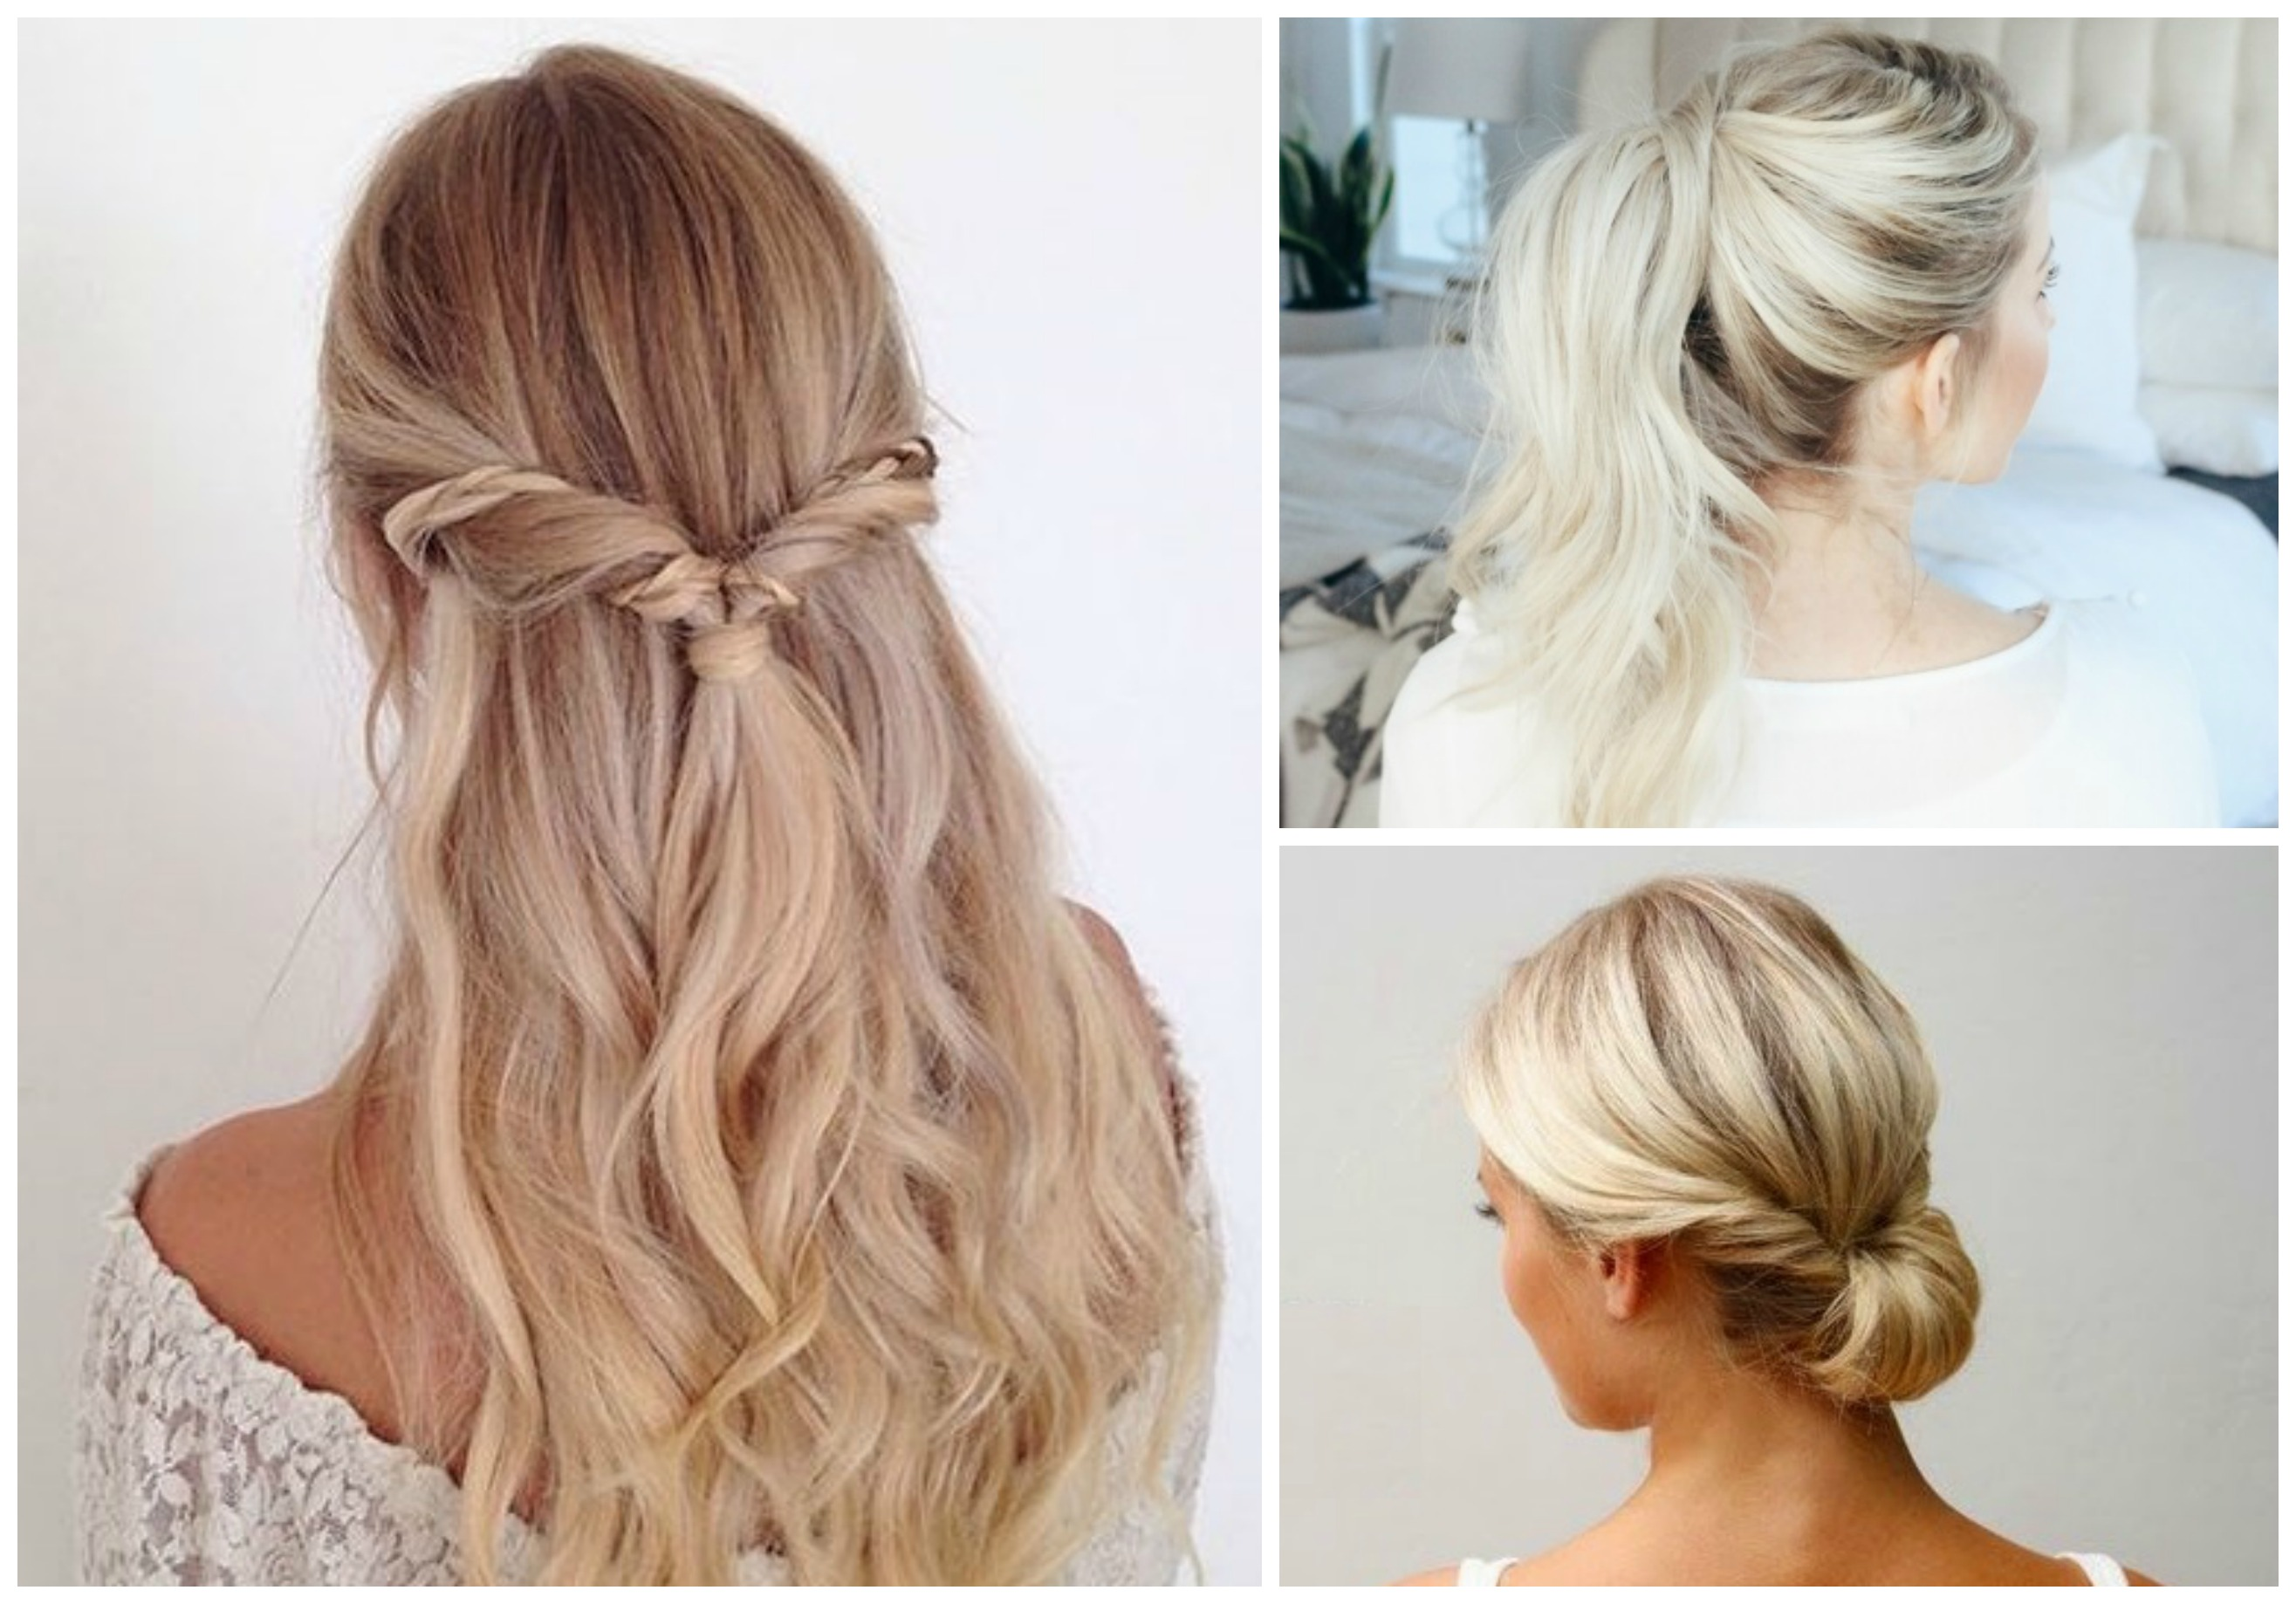 10 Super Easy Hairstyles for Everyday Life